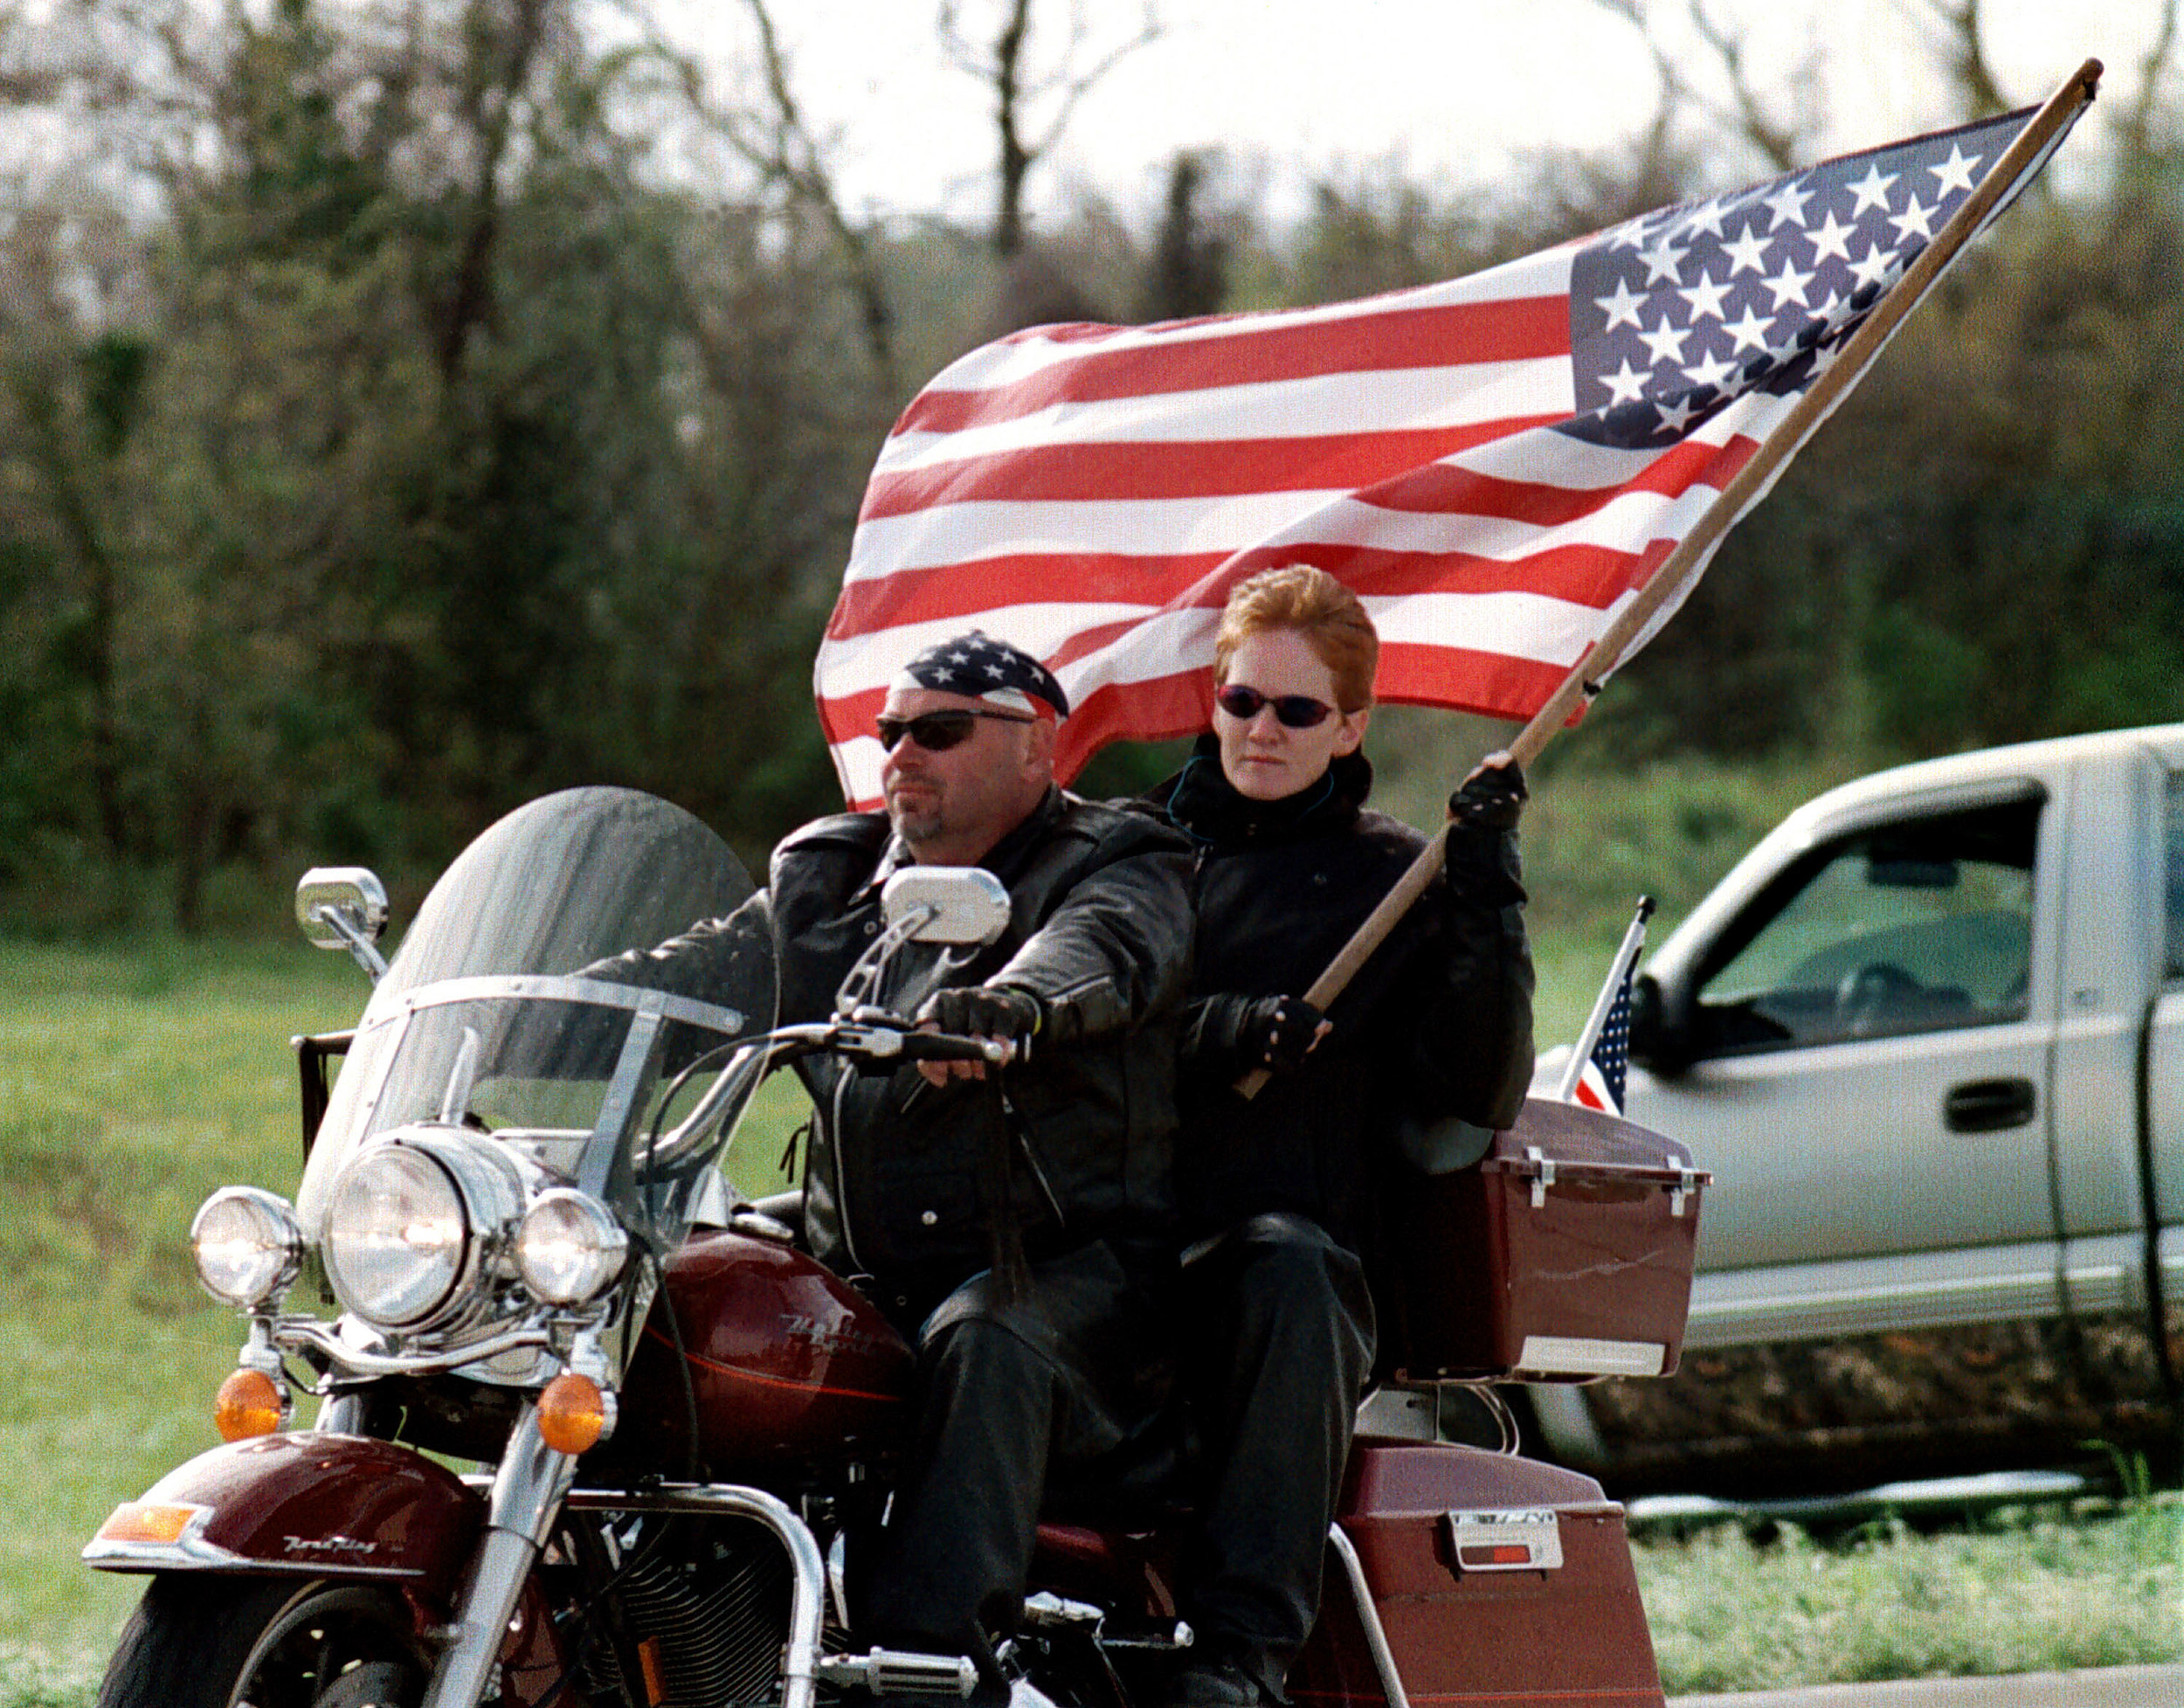 Local biker group seeks to help veterans